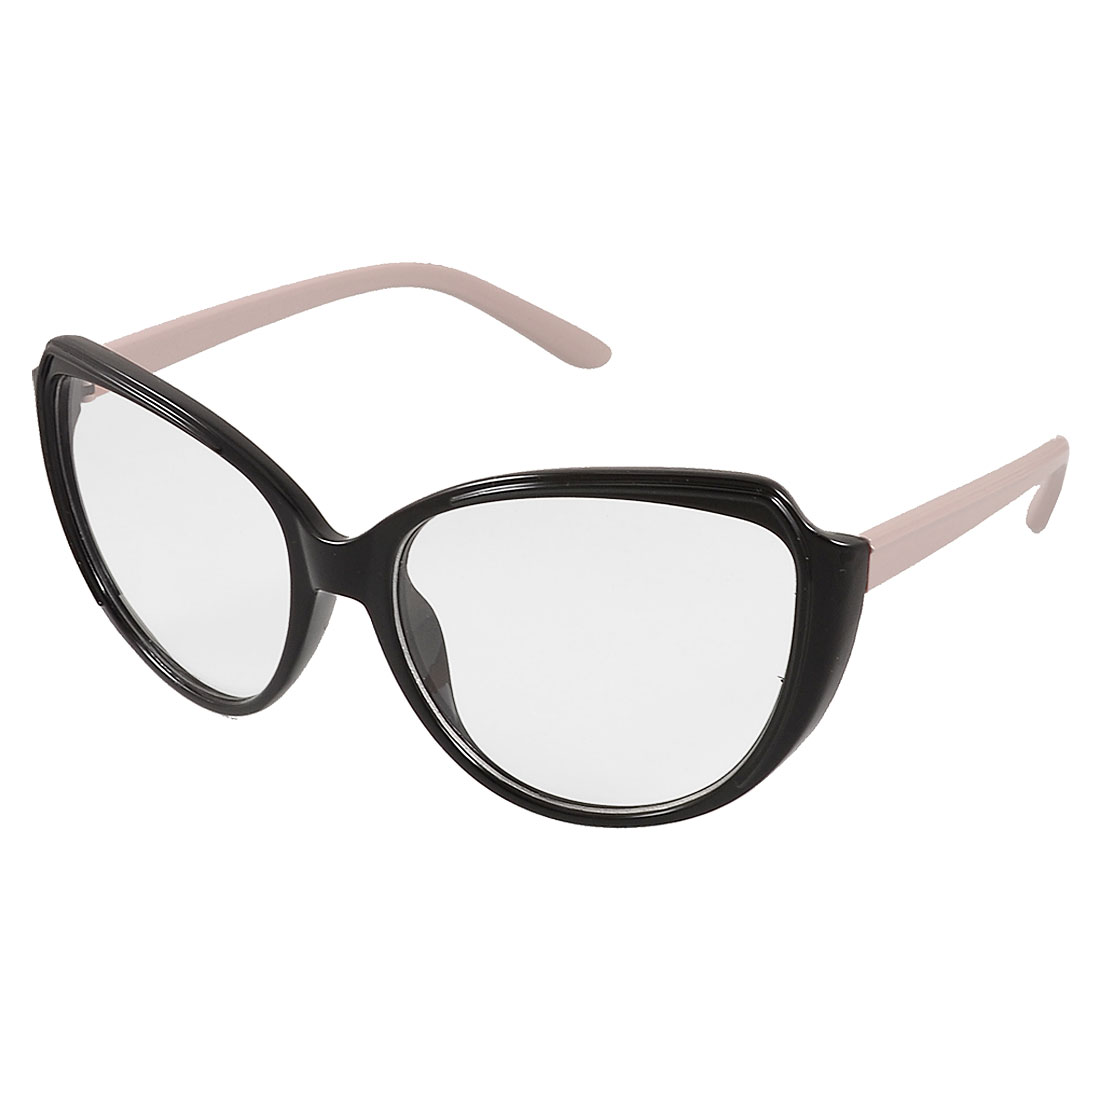 Lady Light Pink Black Plastic Single Bridge Clear Lens Plano Glasses